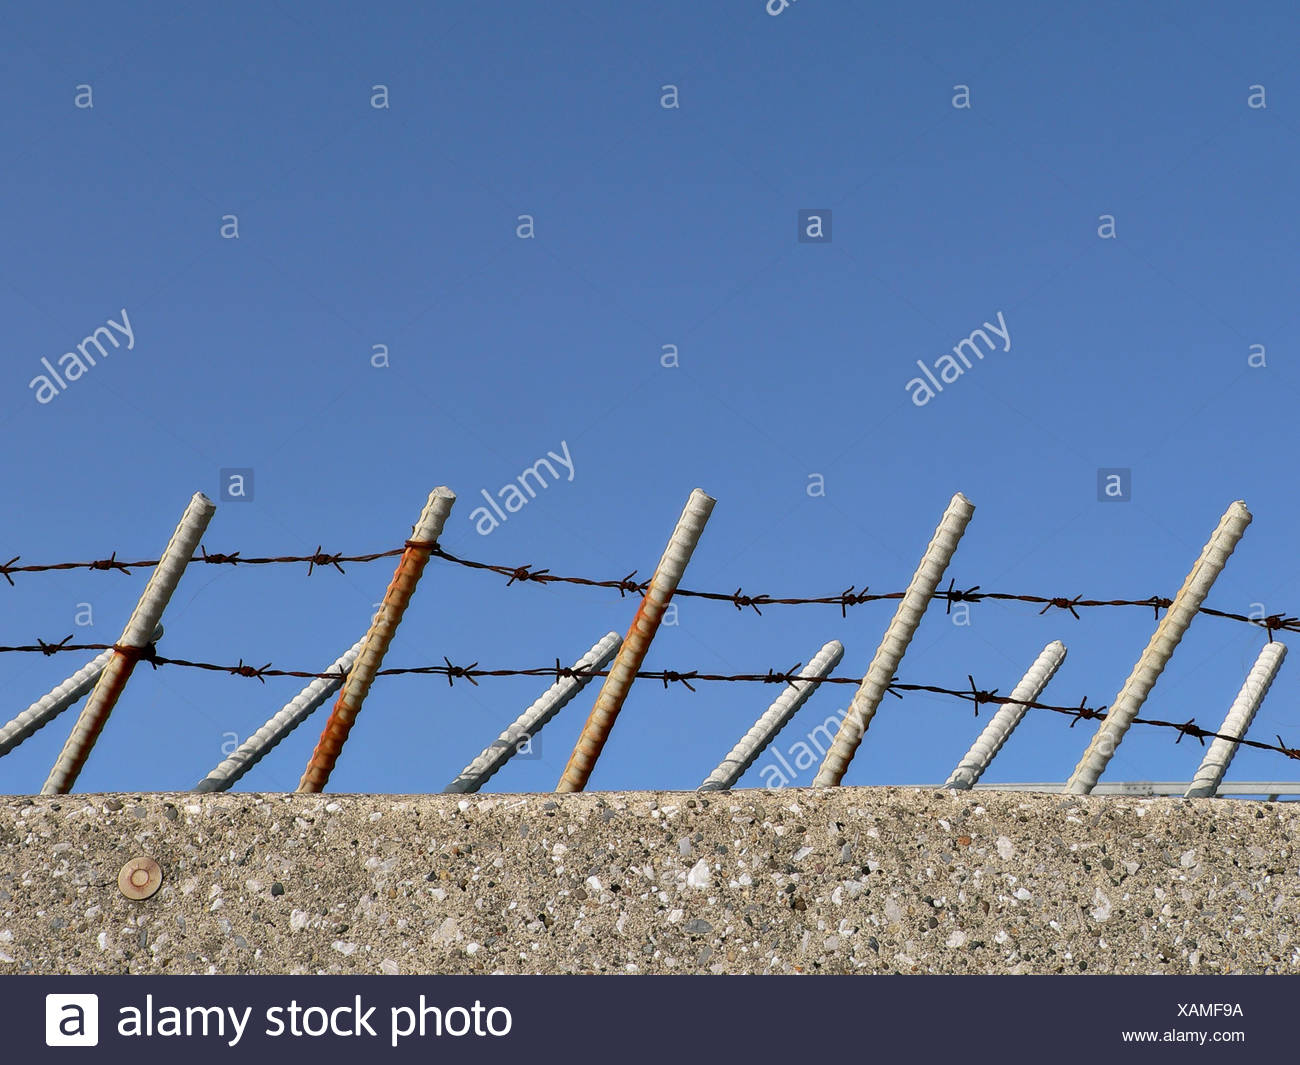 Guard Wire Stockfotos & Guard Wire Bilder - Alamy